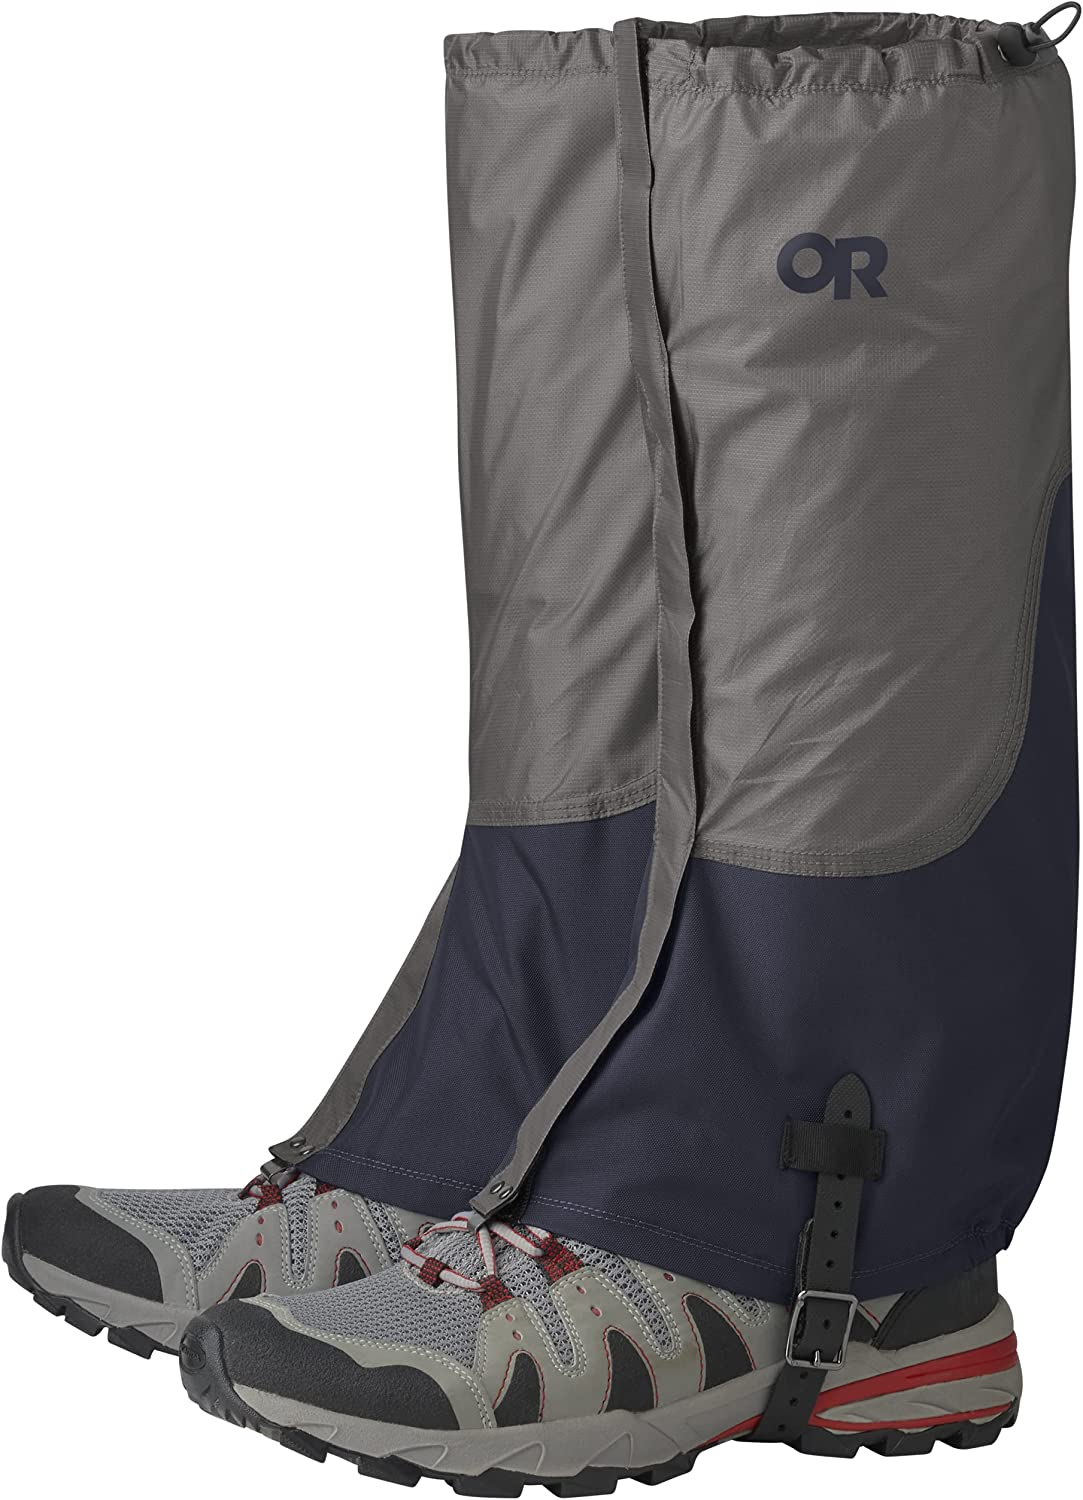 Outdoor Research Men's Helium Gaiters Limited Special Price – Breathable Leg Free shipping anywhere in the nation